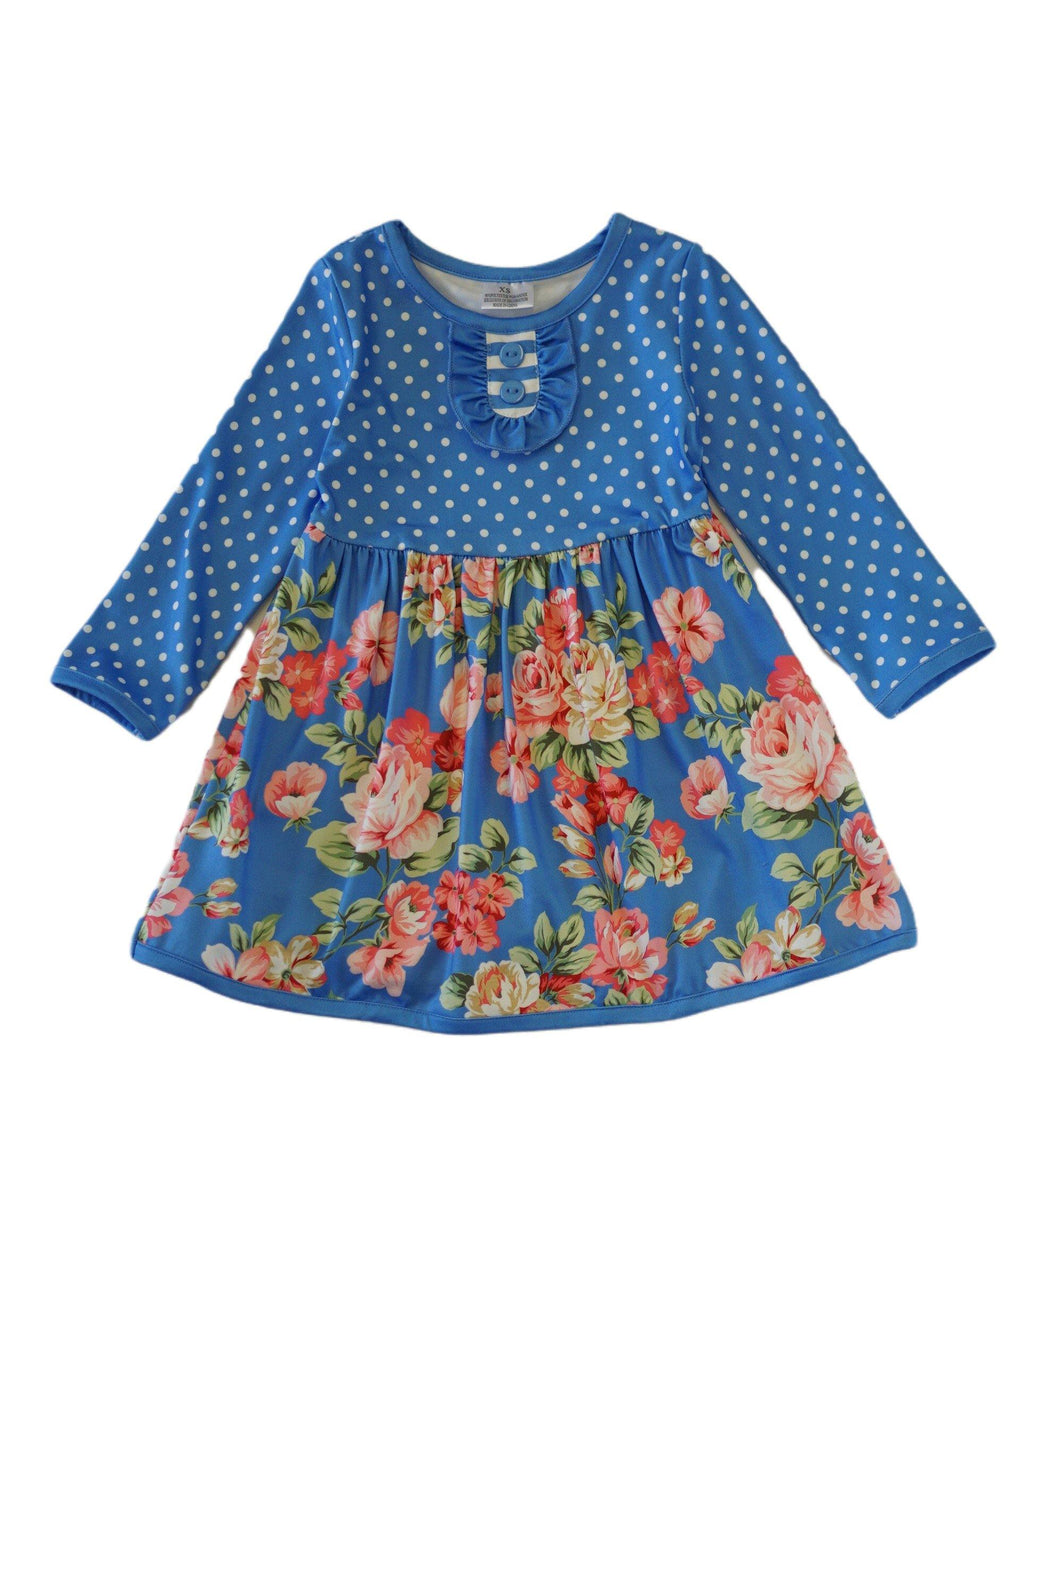 Blue floral polkadot dress